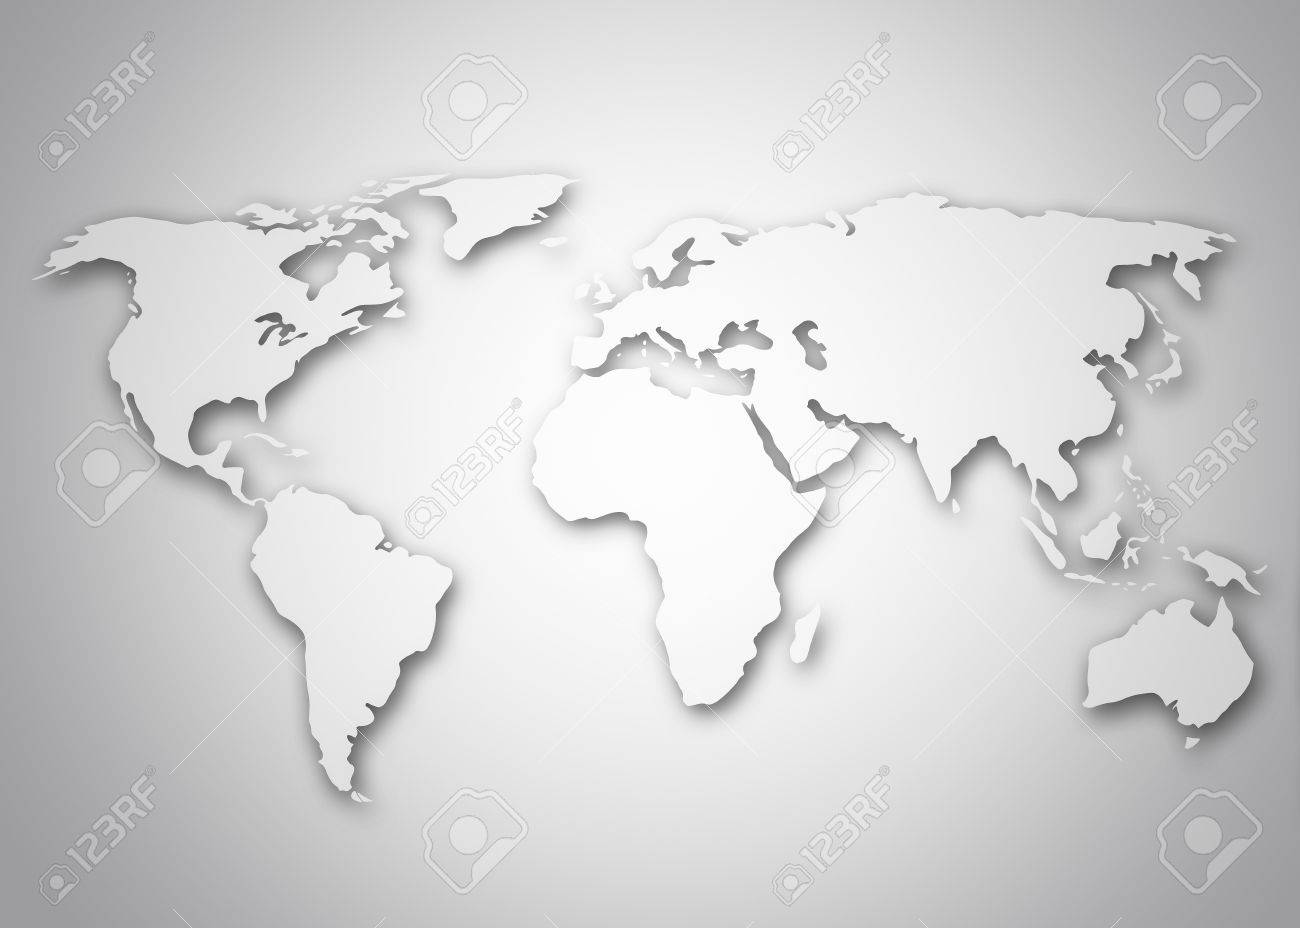 Image of a stylized world map stock photo picture and royalty image of a stylized world map stock photo 17314664 sciox Image collections